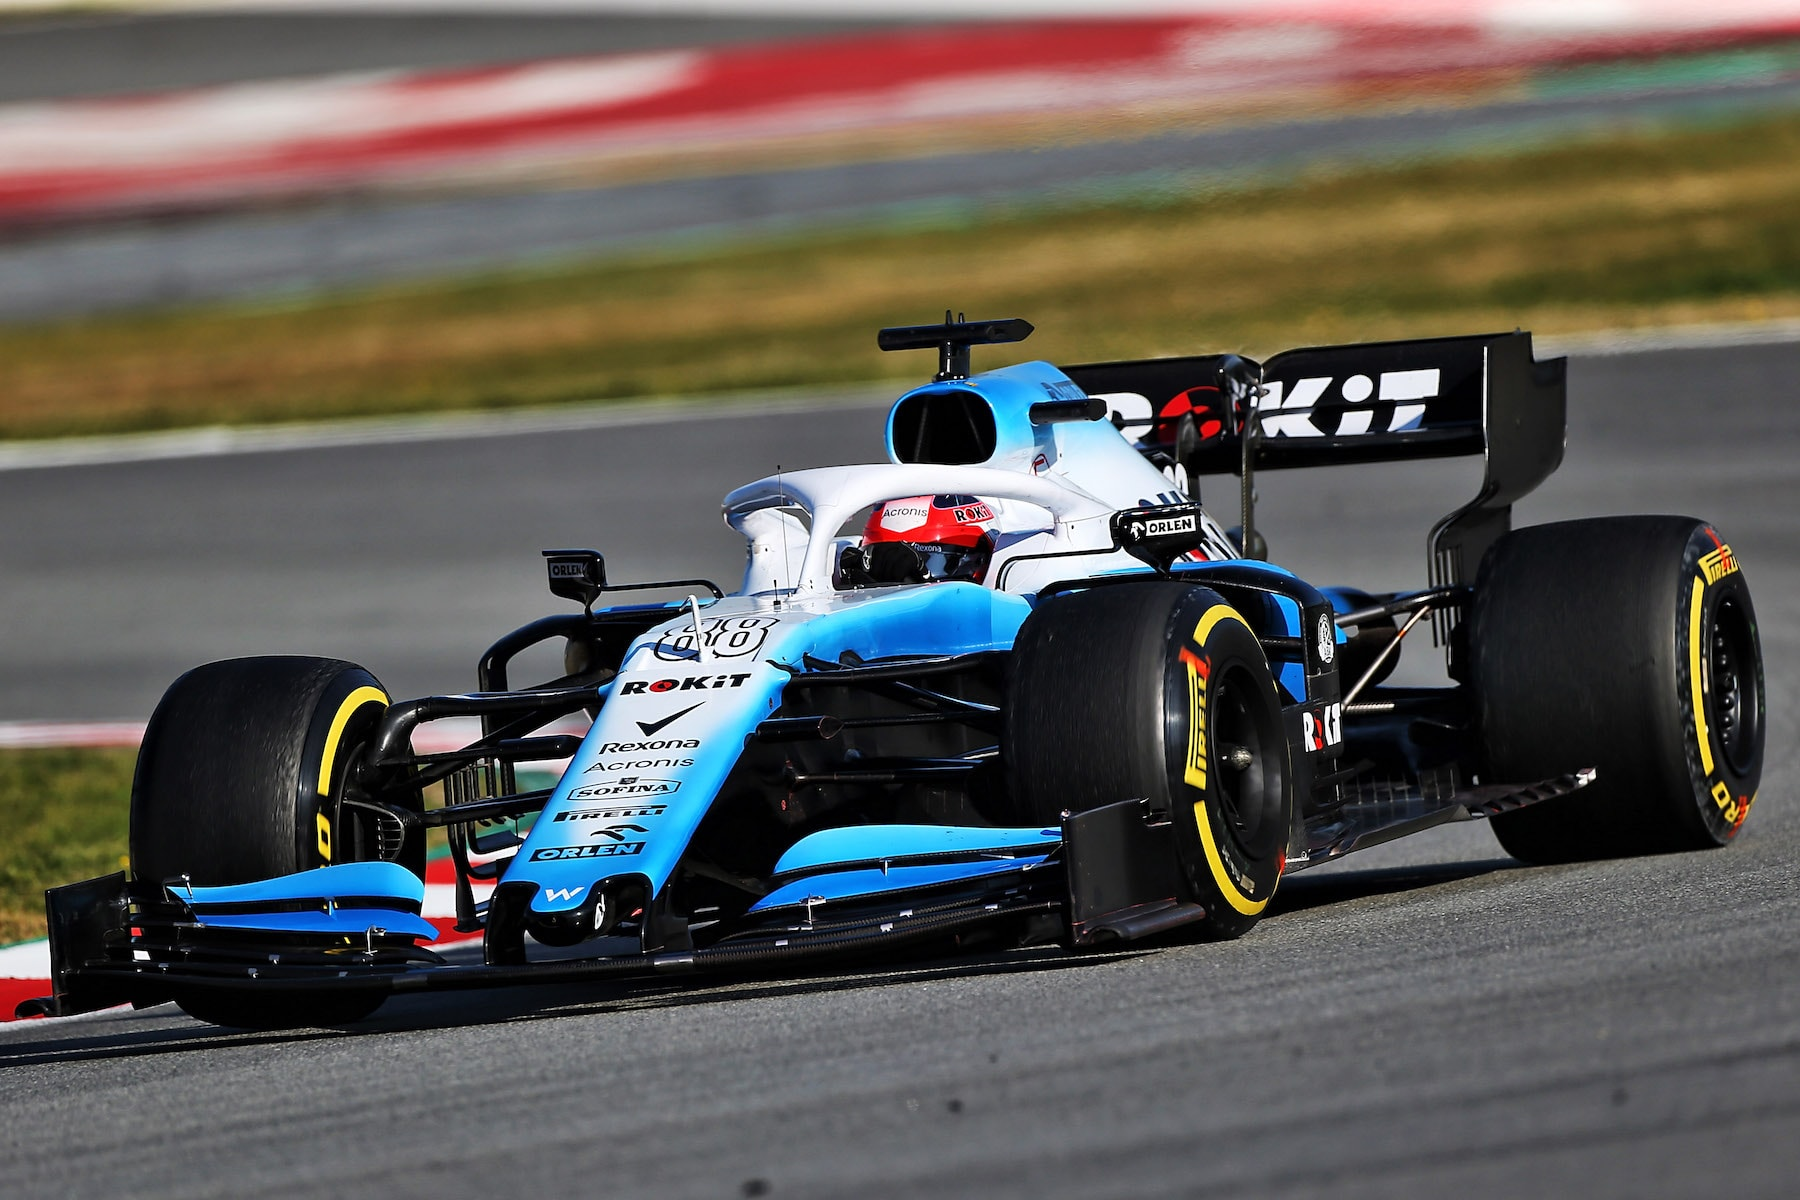 2019 Robert Kubica | Williams FW42 | 2019 Barcelona T2 D4 2 copy.jpg